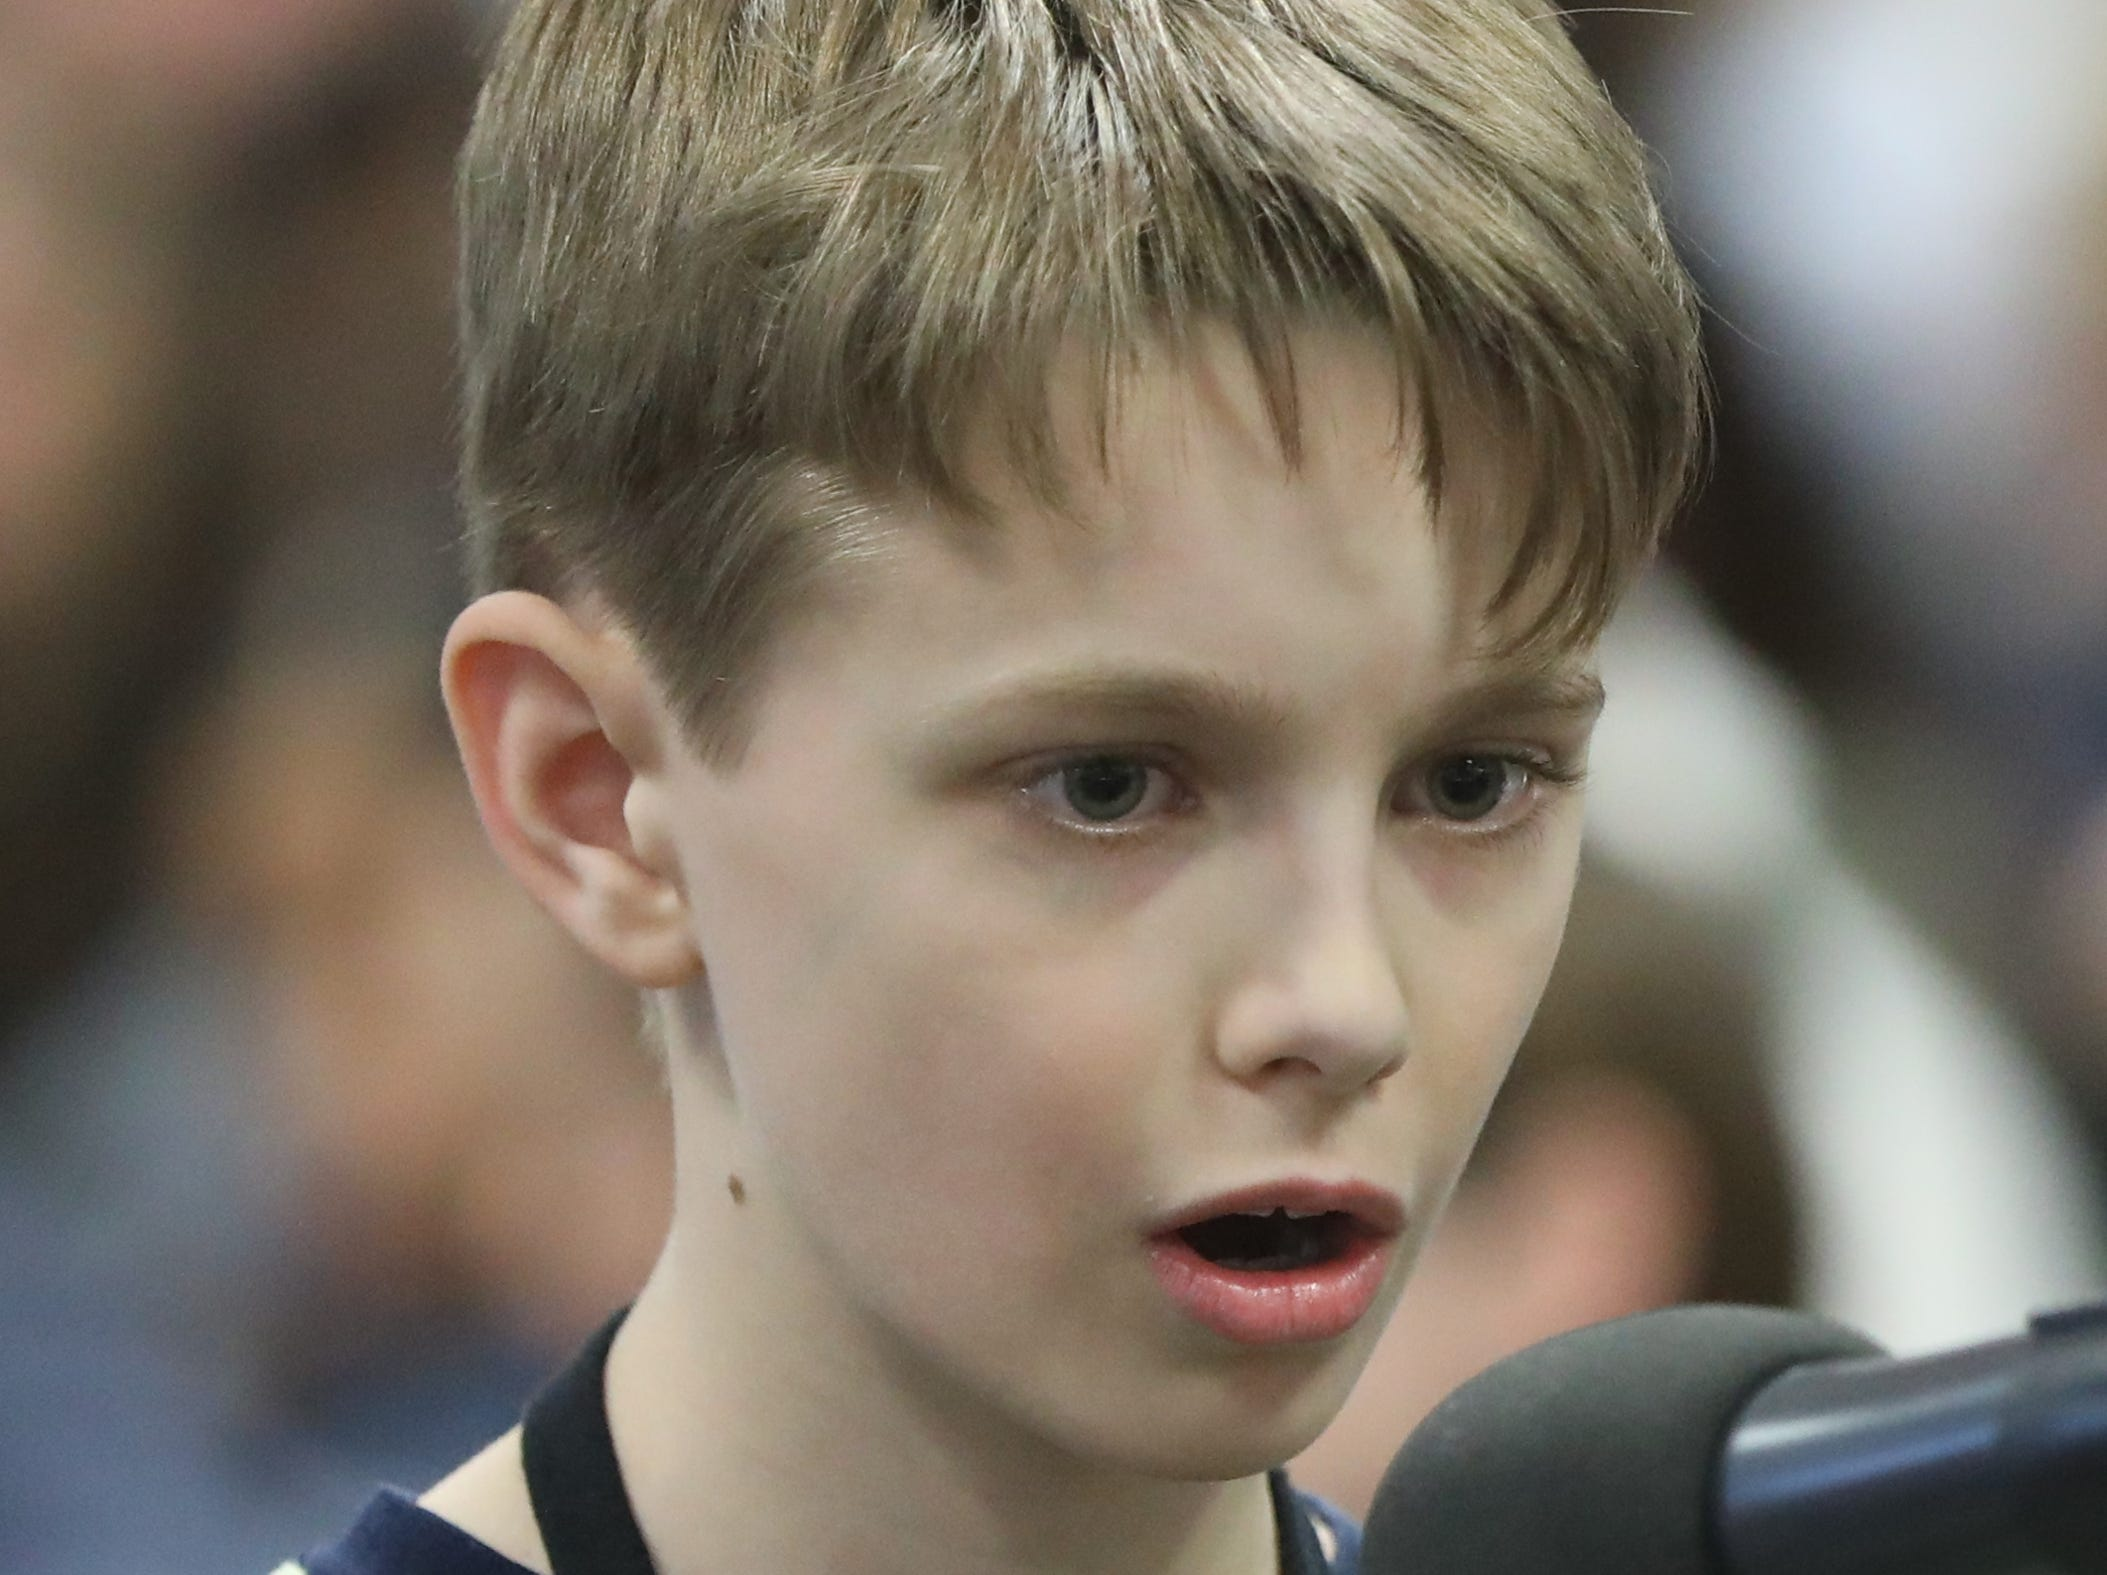 Thomas Isrenhagen, of Westwood, competes in the first round of the 2019 North Jersey Spelling Bee, in Paramus. Thursday, March 14, 2019